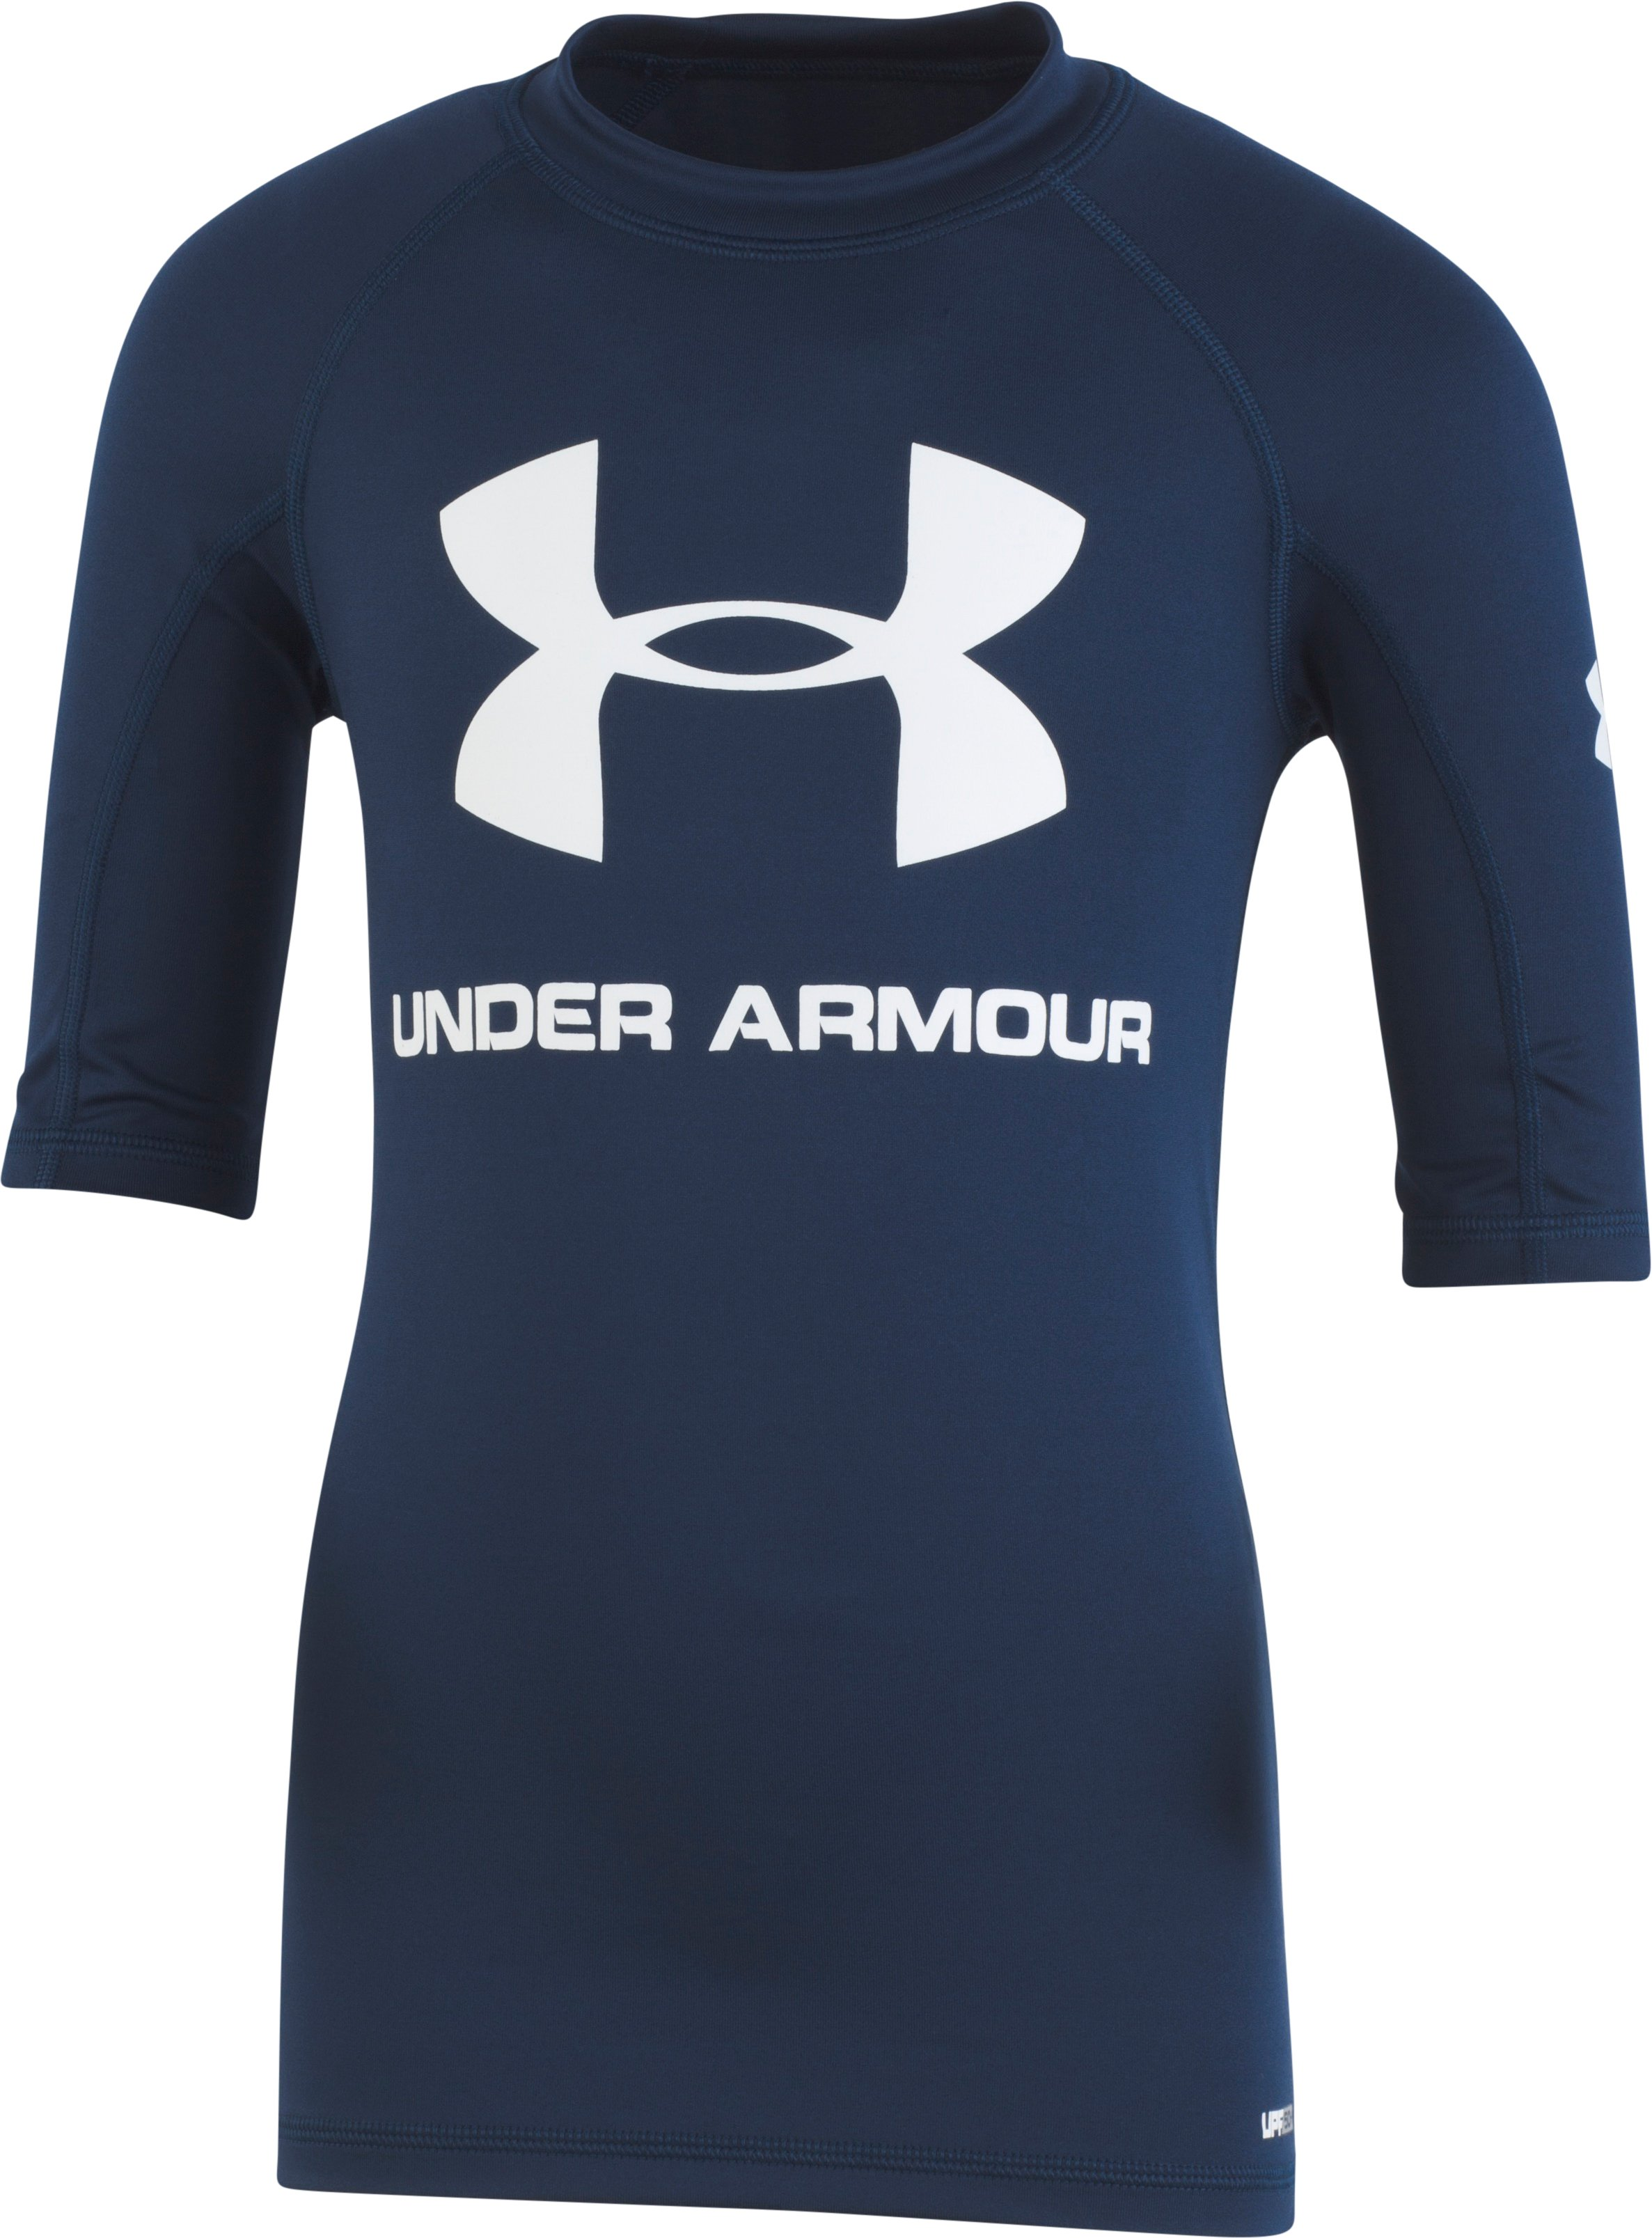 Boys' Pre-School UA Compression Rashguard Short Sleeve Shirt 2 Colors $26.99